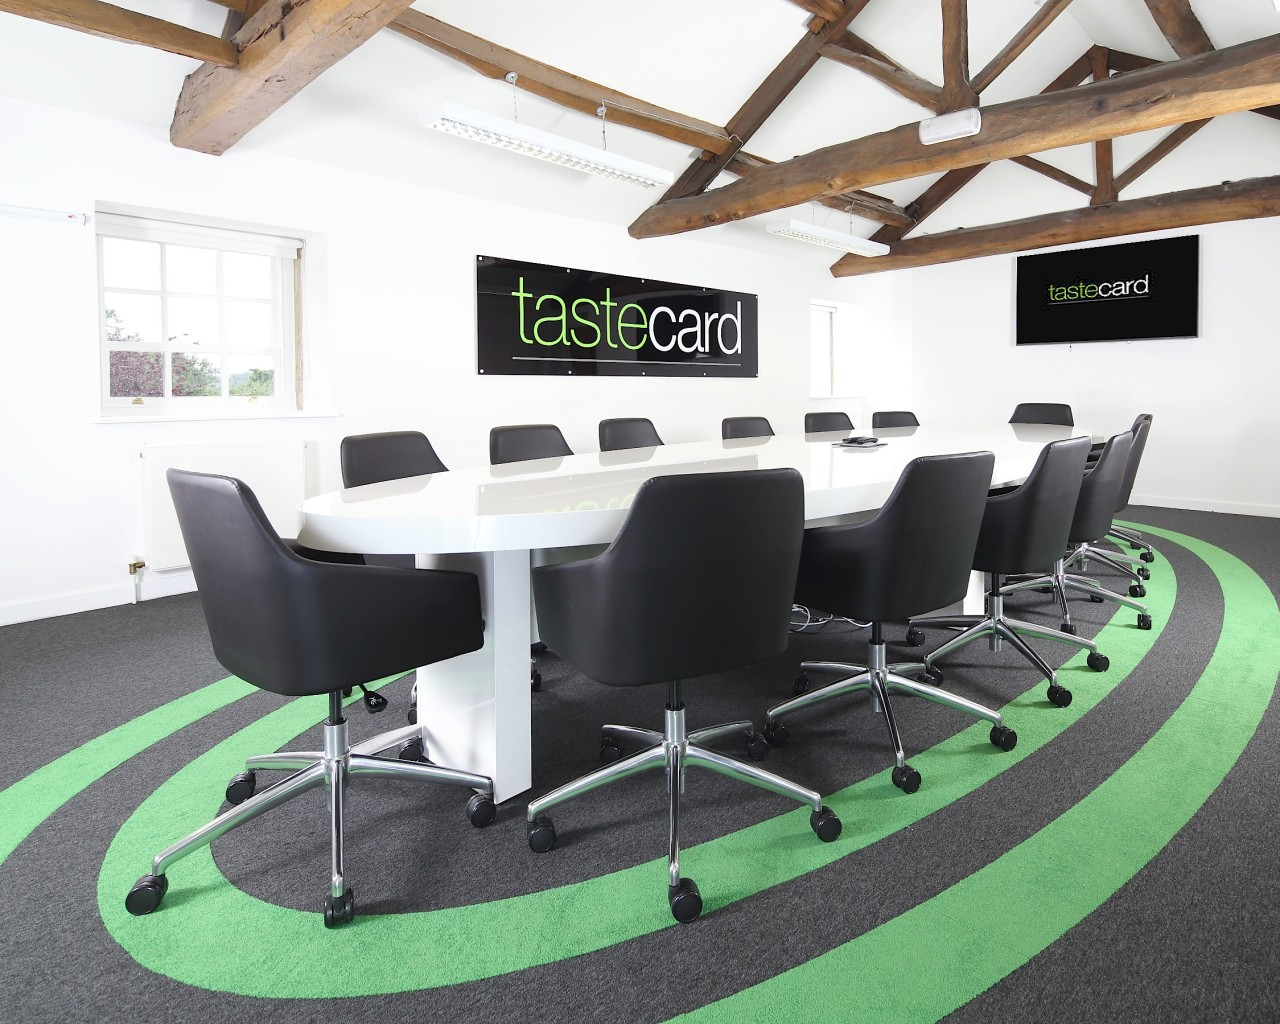 Office fitout, Office fit out, Bolton, Manchester, Cheshire, Lancashire, Liverpool, Leeds, UK